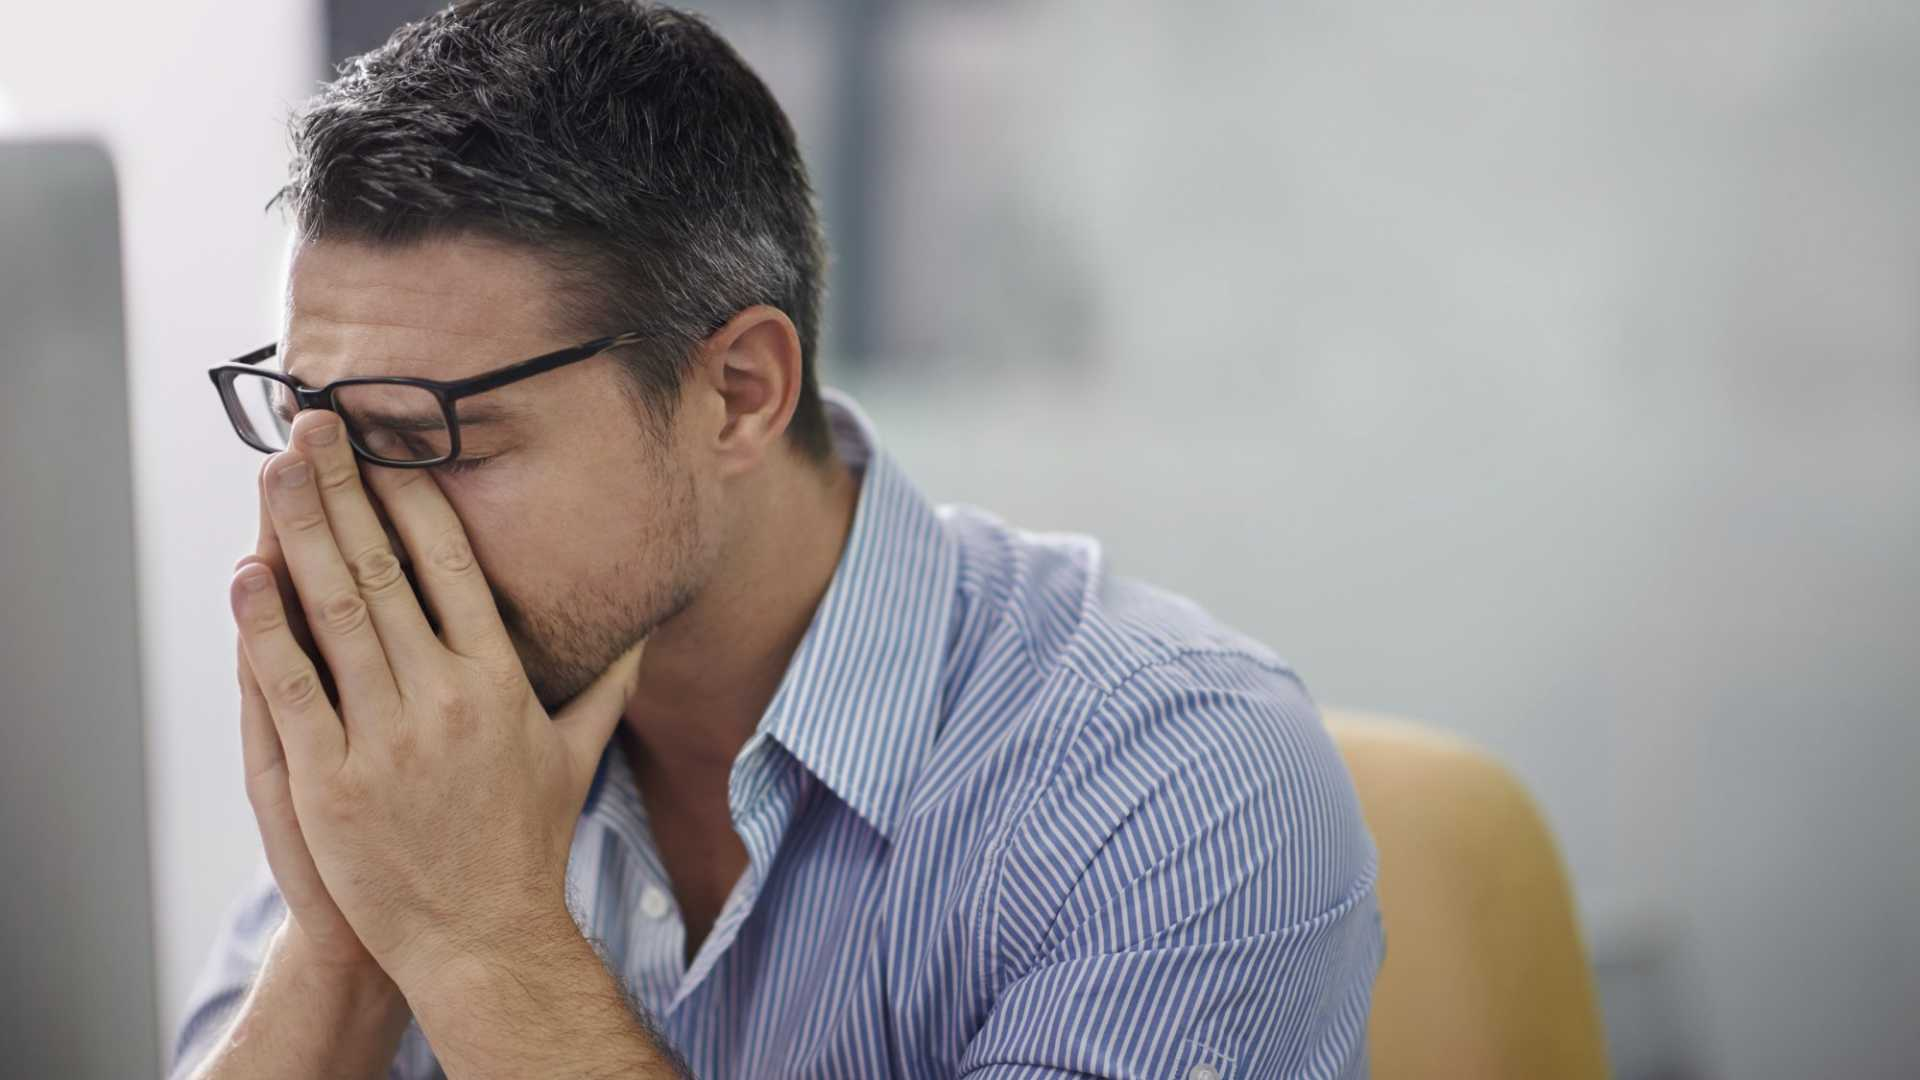 5 Common Insecurities That Lead to Burnout (and How to Avoid Them)